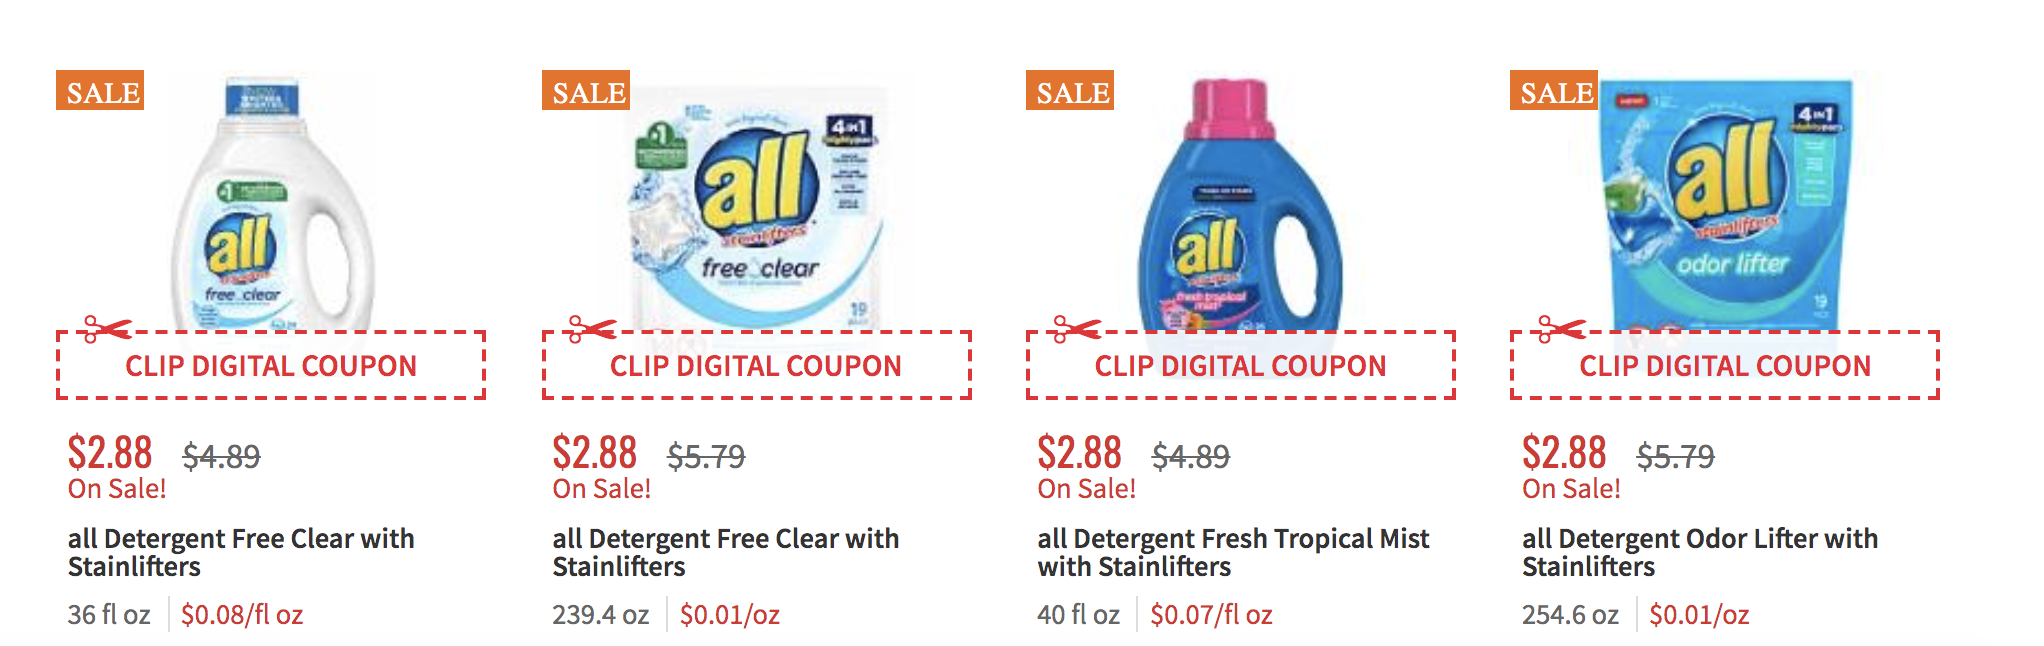 All Laundry Detergent Just 1 88 At Shoprite Living Rich With Coupons